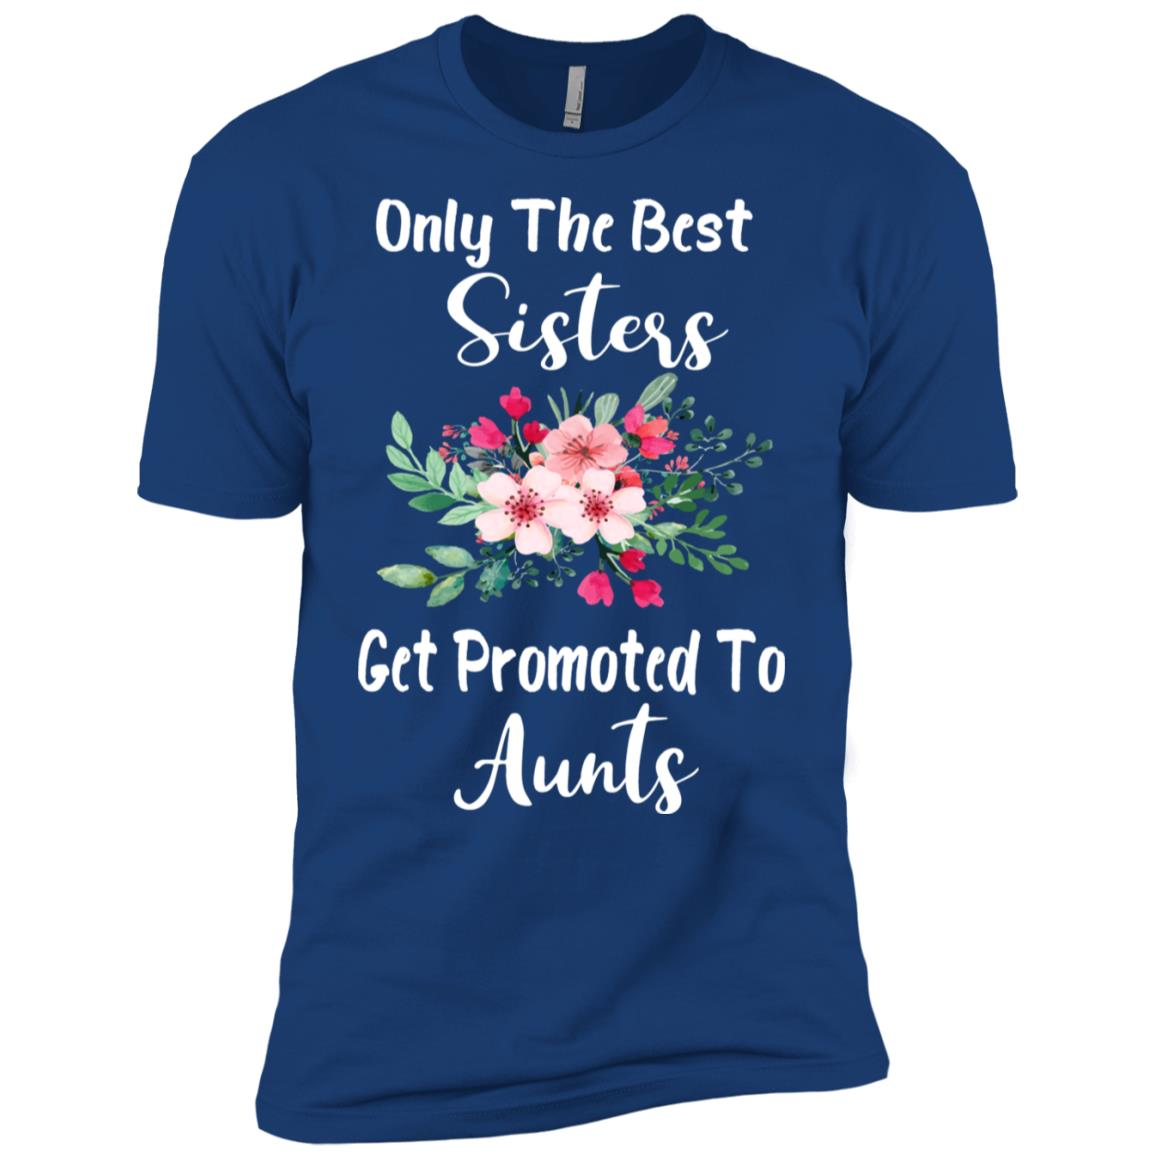 Only The Best Sisters Get Promoted To Aunts Tee Men Short Sleeve T-Shirt